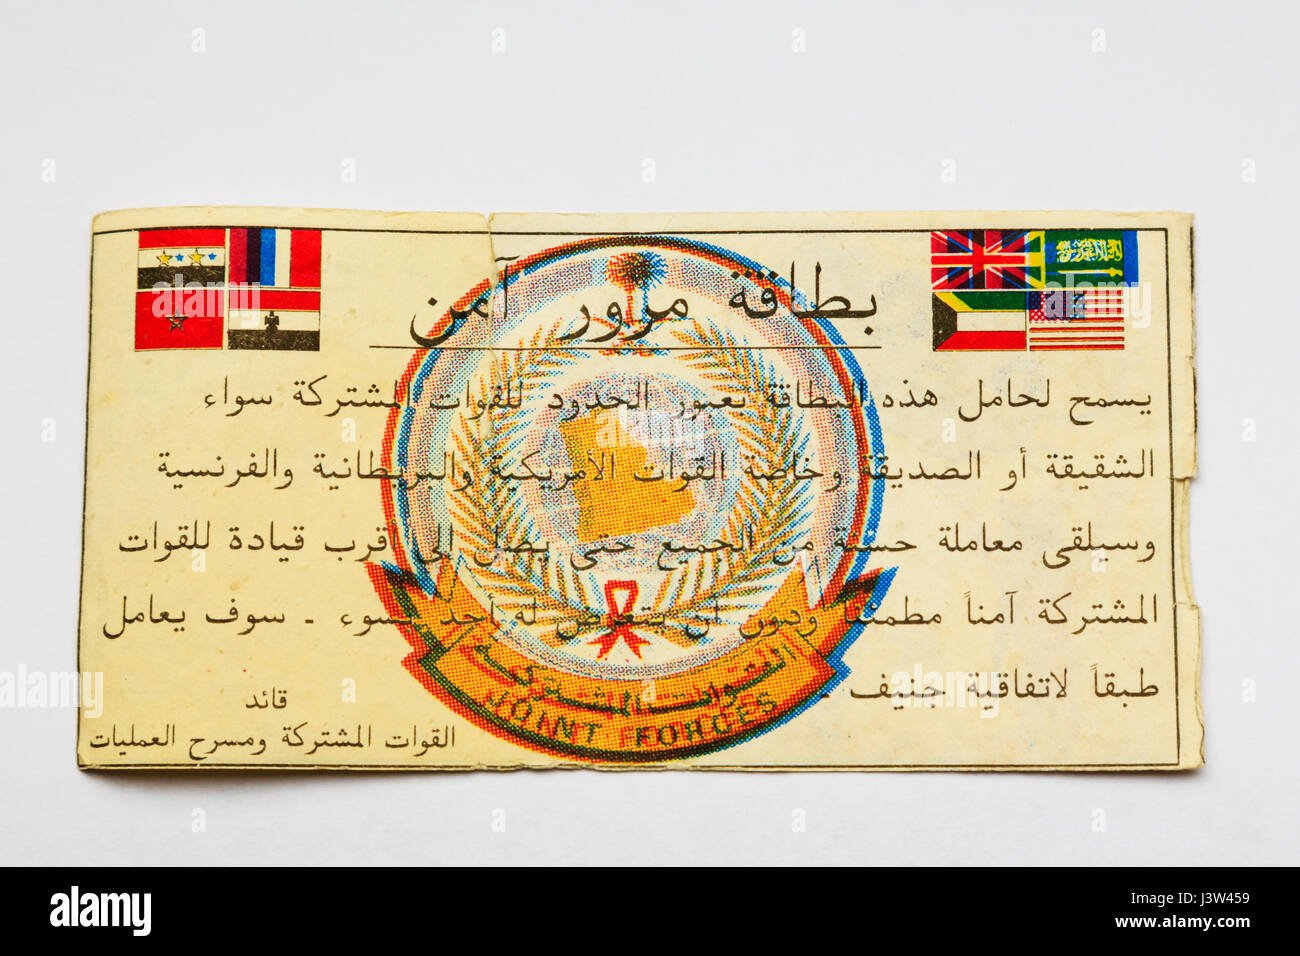 leaflets-encouraging-iraqi-forces-to-sur